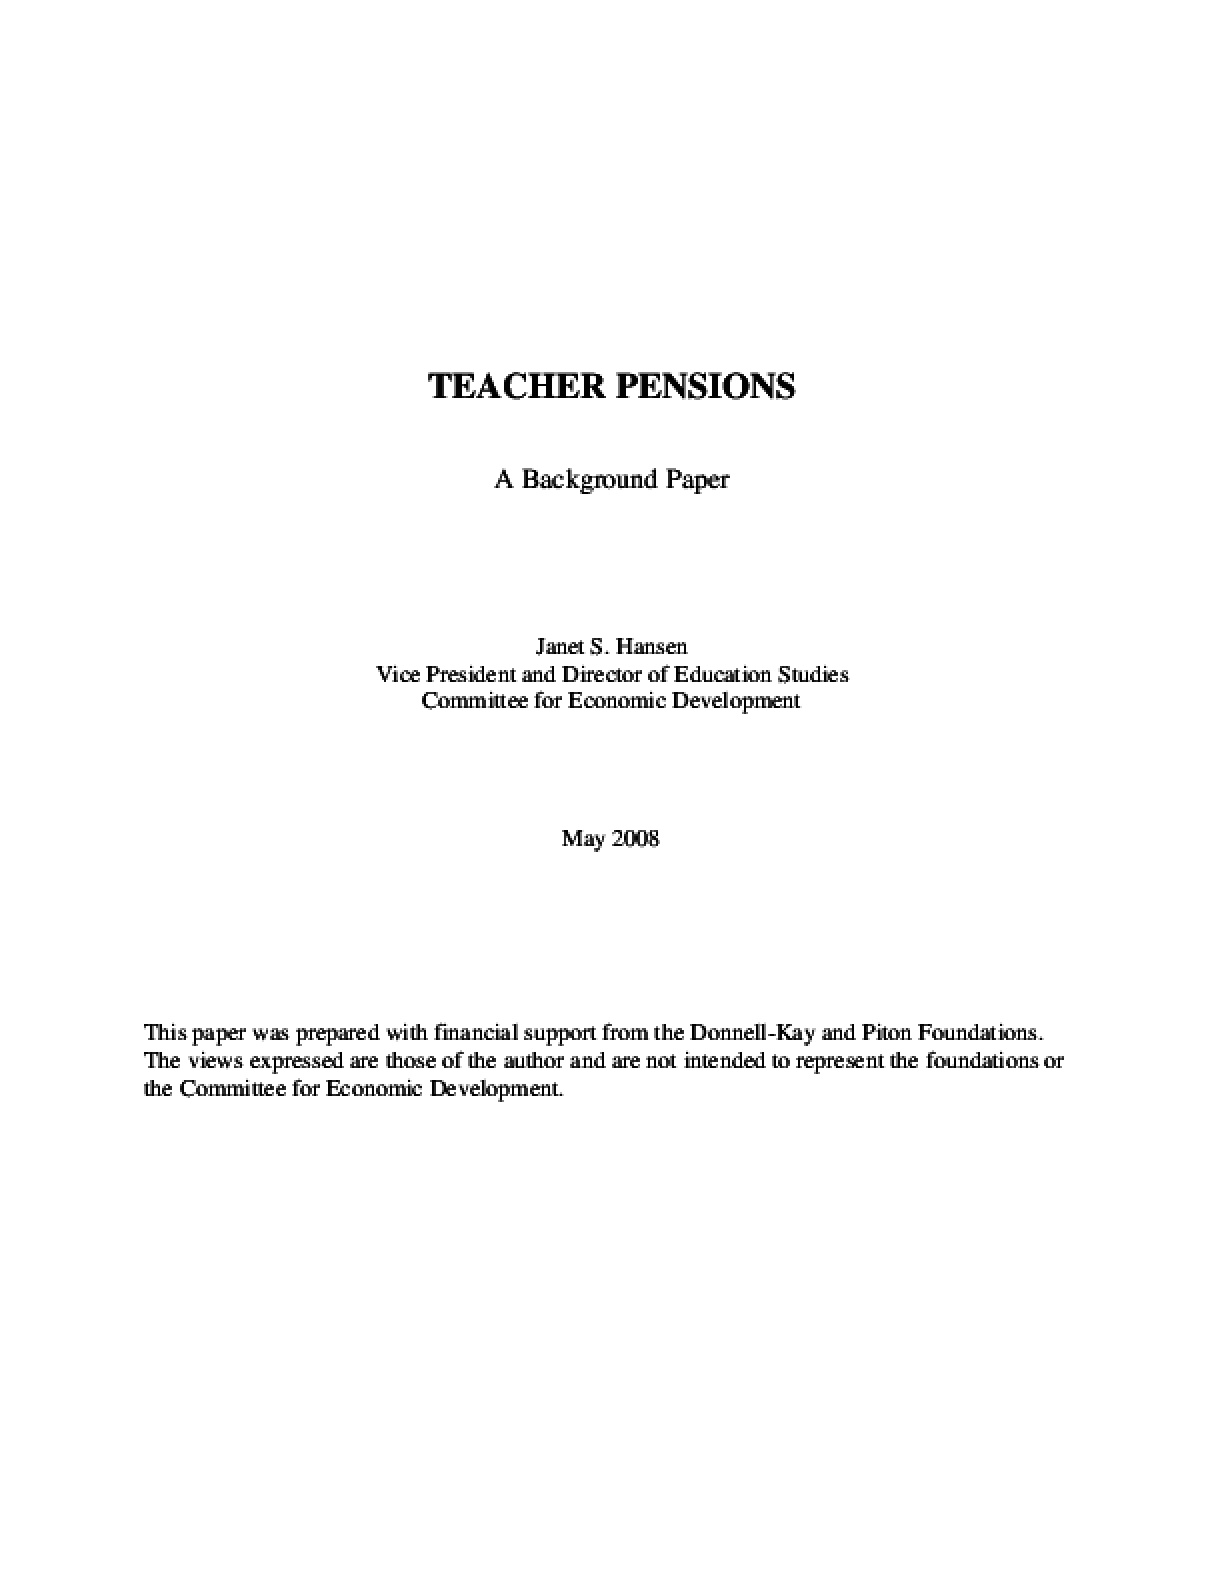 Teacher Pensions: A Background Paper